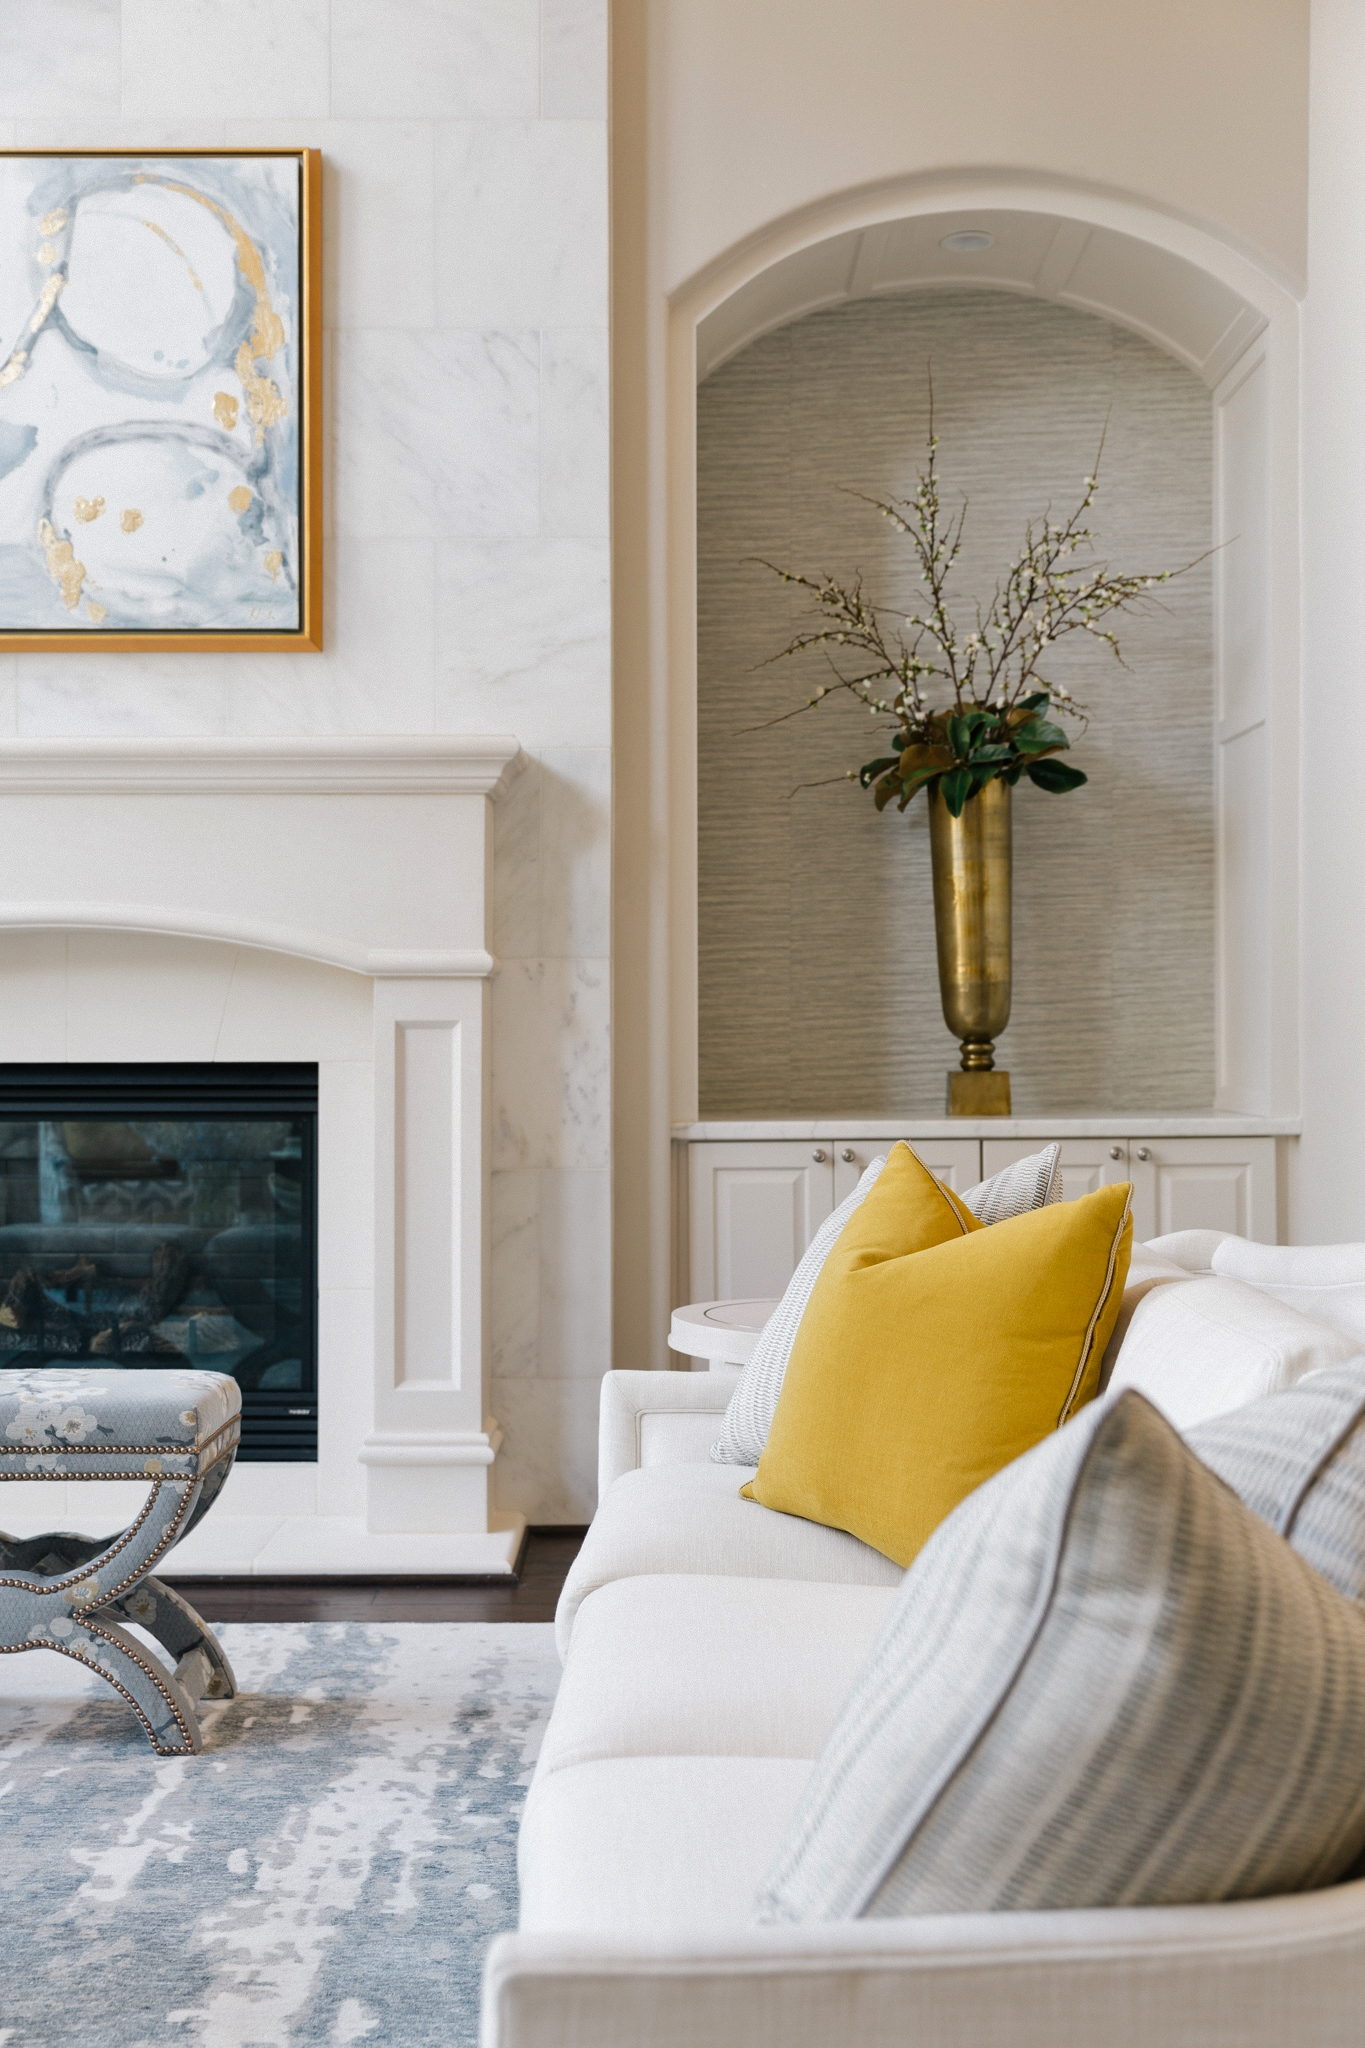 Living room with soft blue grays, creamy whites and bright yellow accented in custom pillows. | Interior Designer: Carla Aston #pillows #livingroomideas #homedecor